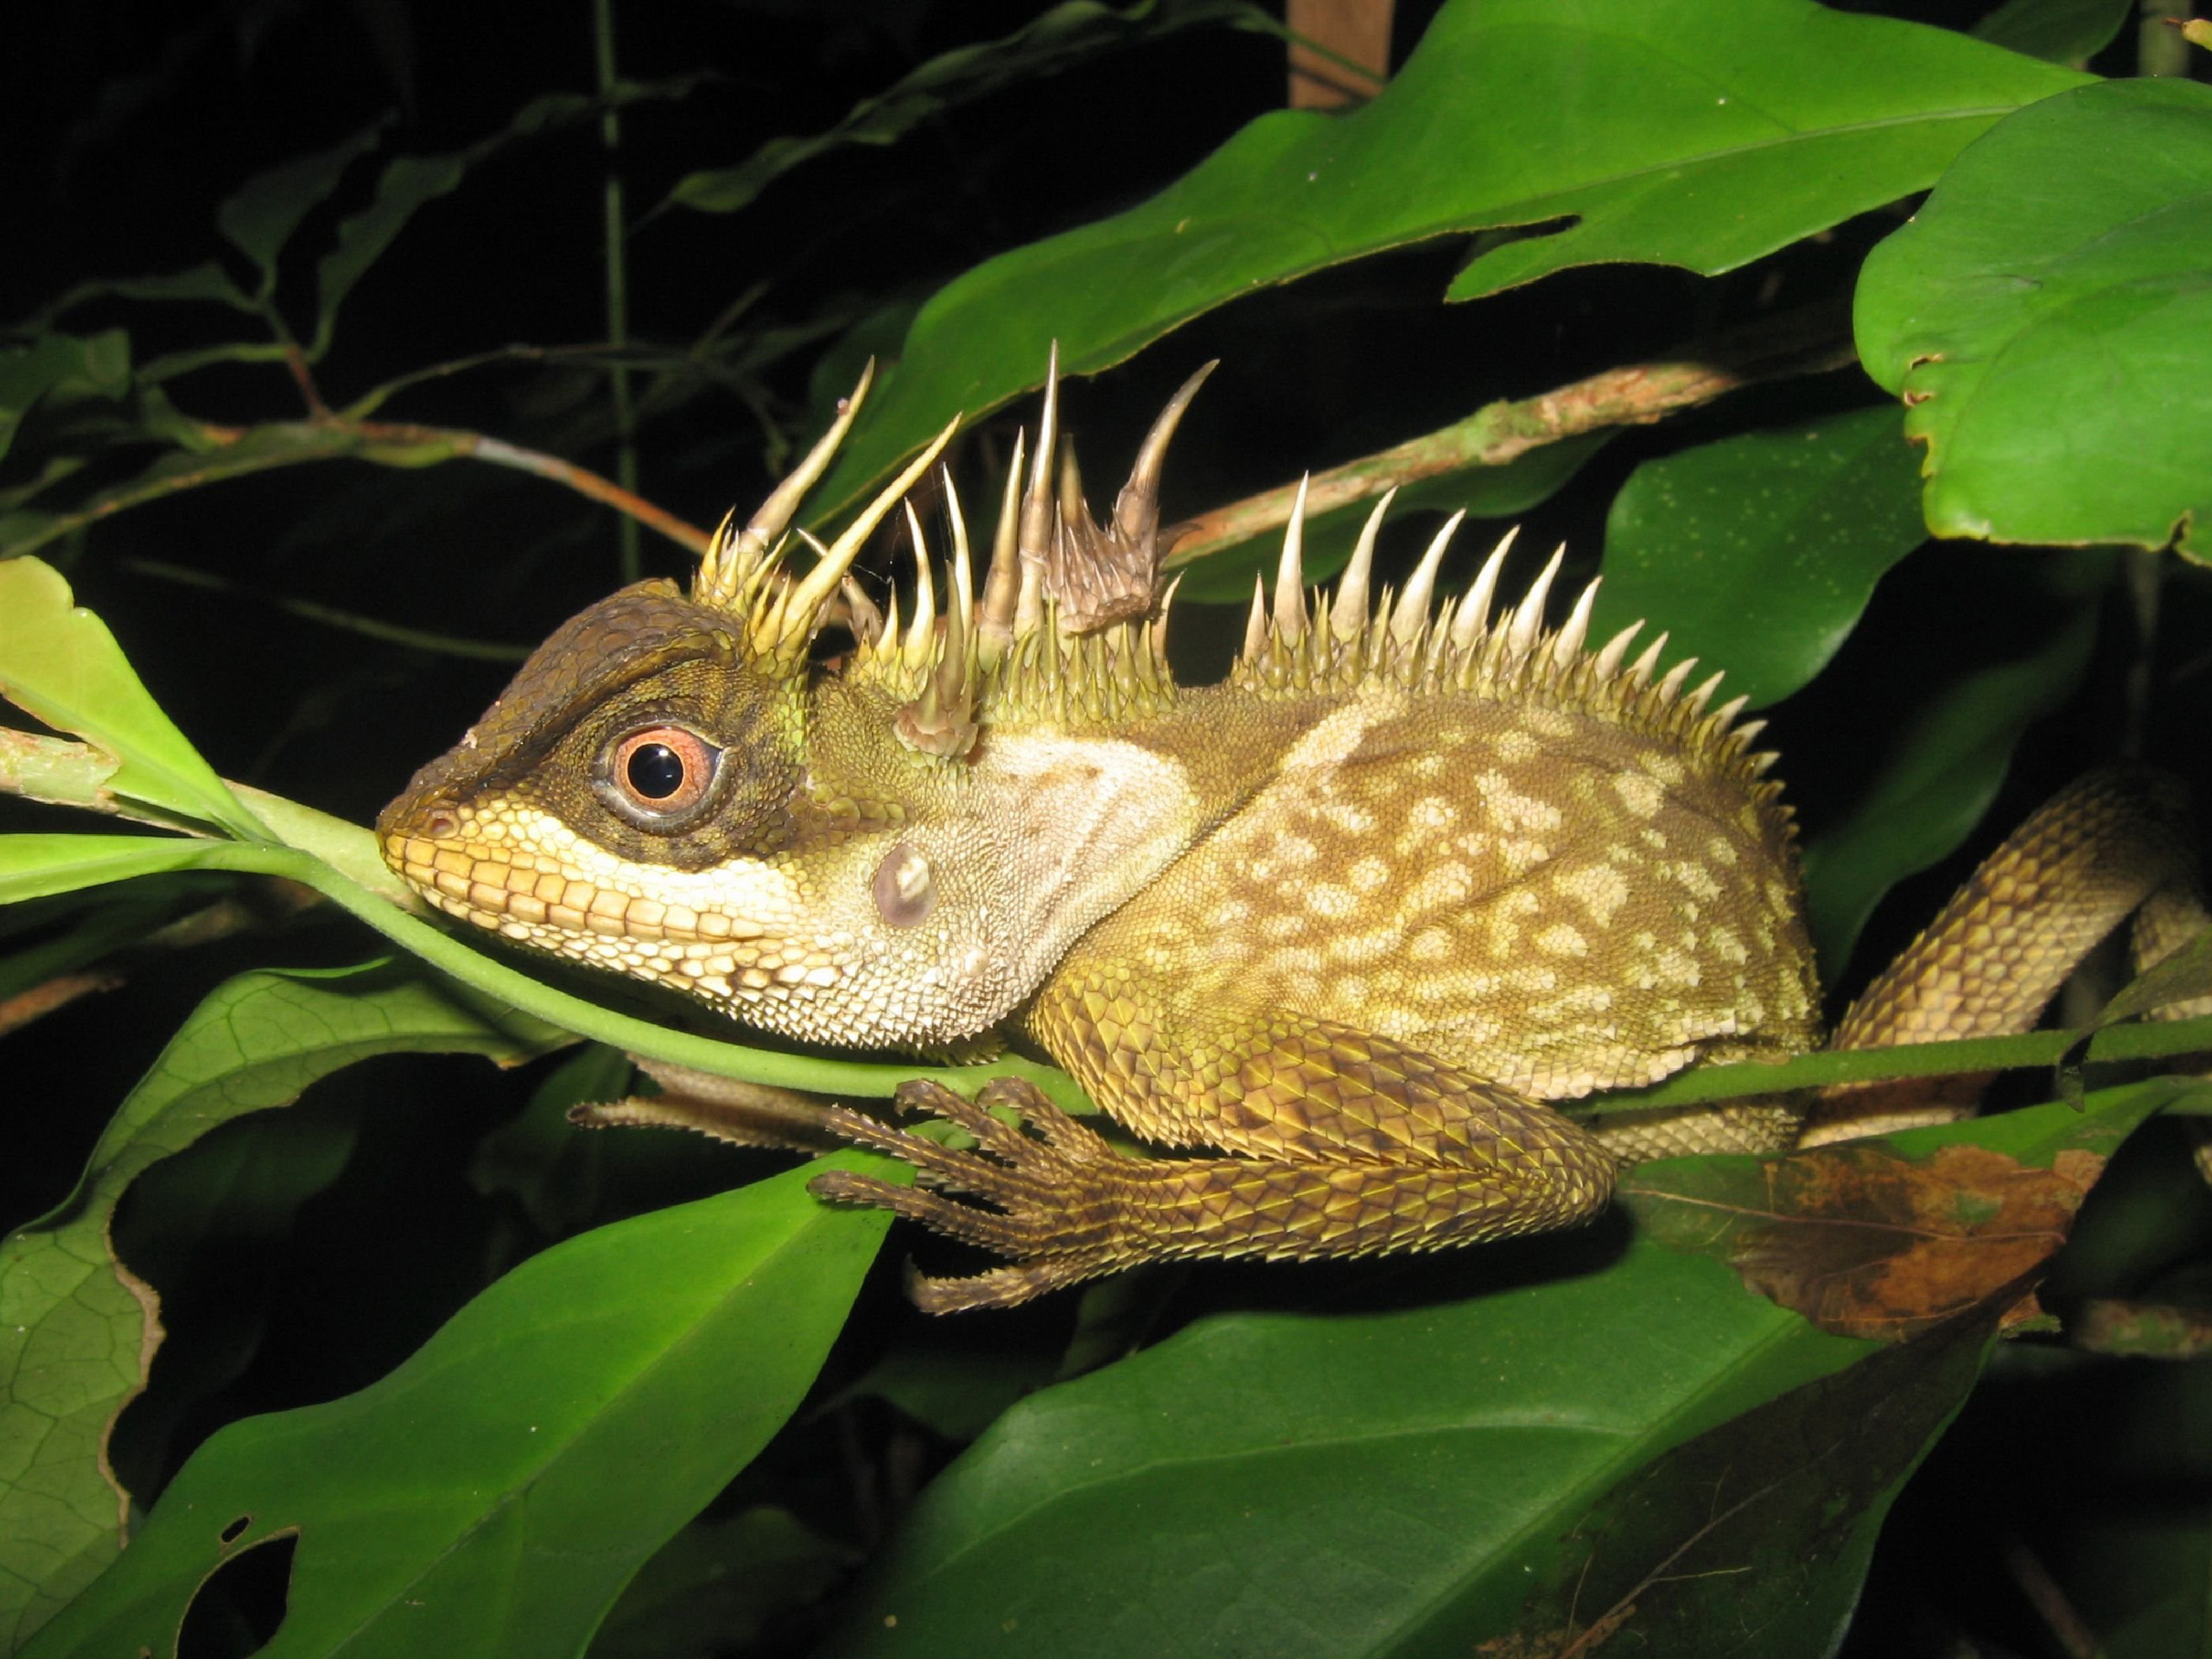 A new species of lizard called acanthosaura phuketensis in Phuket.